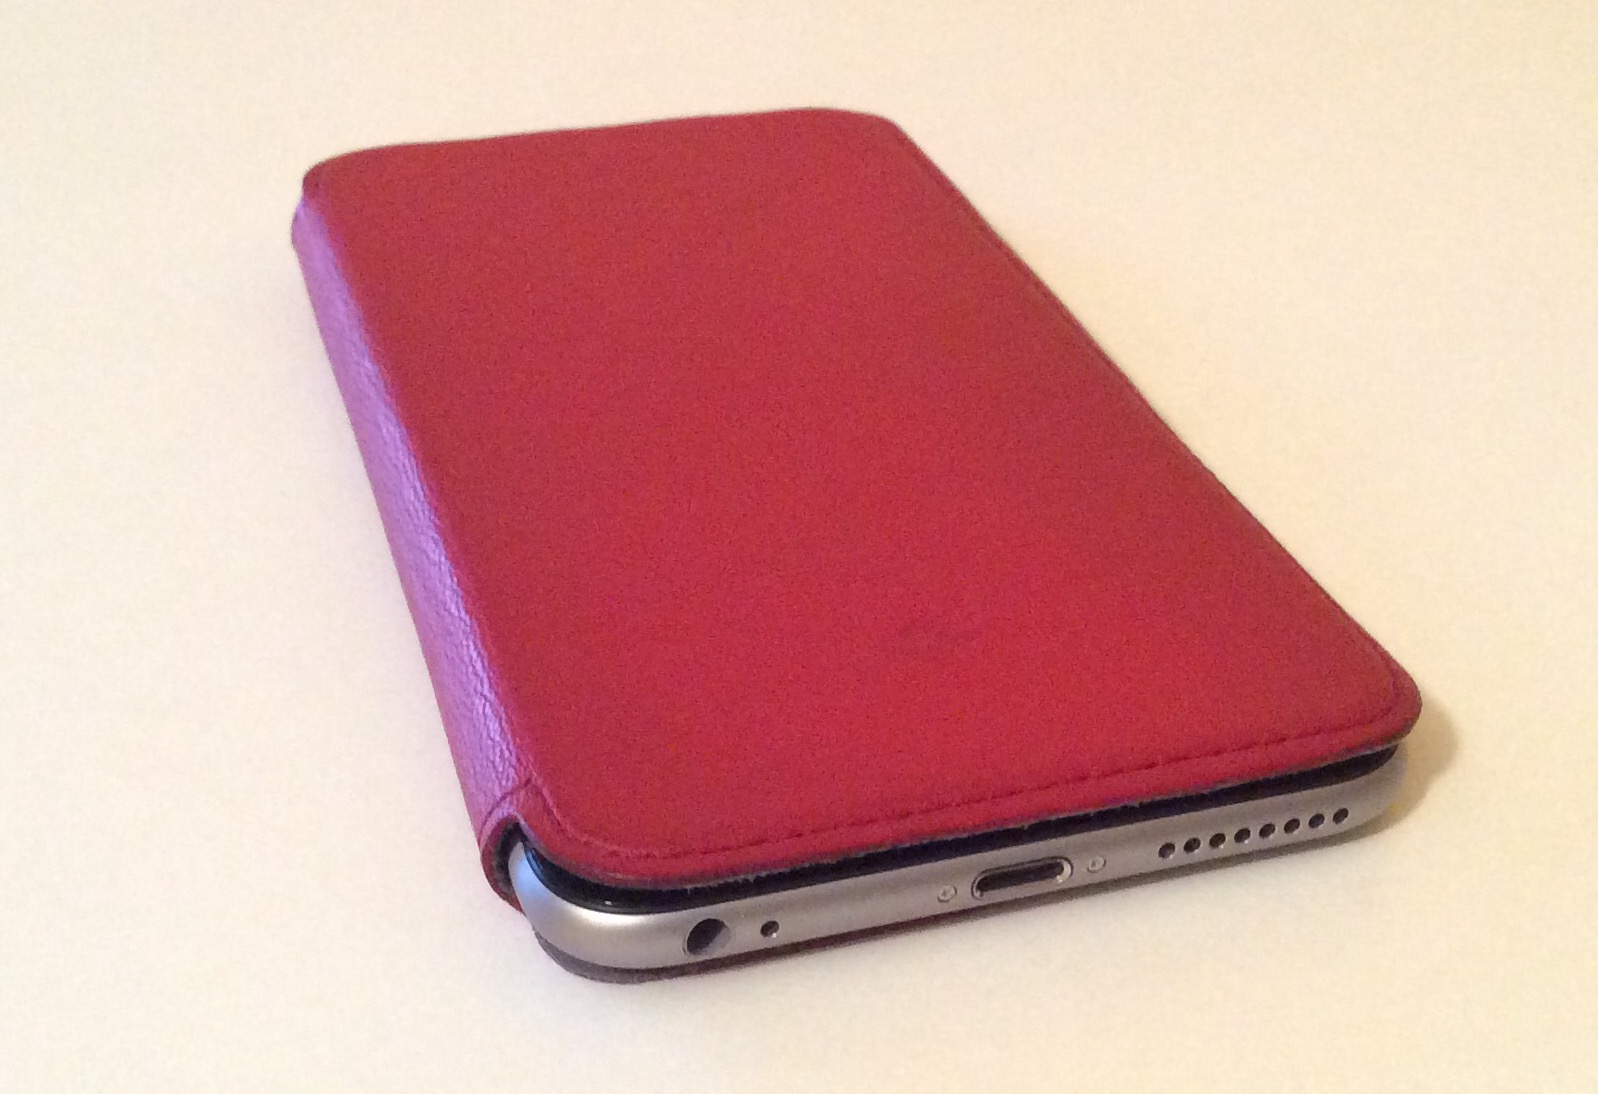 Twelve South SurfacePad for iPhone 6 Plus picture 00022